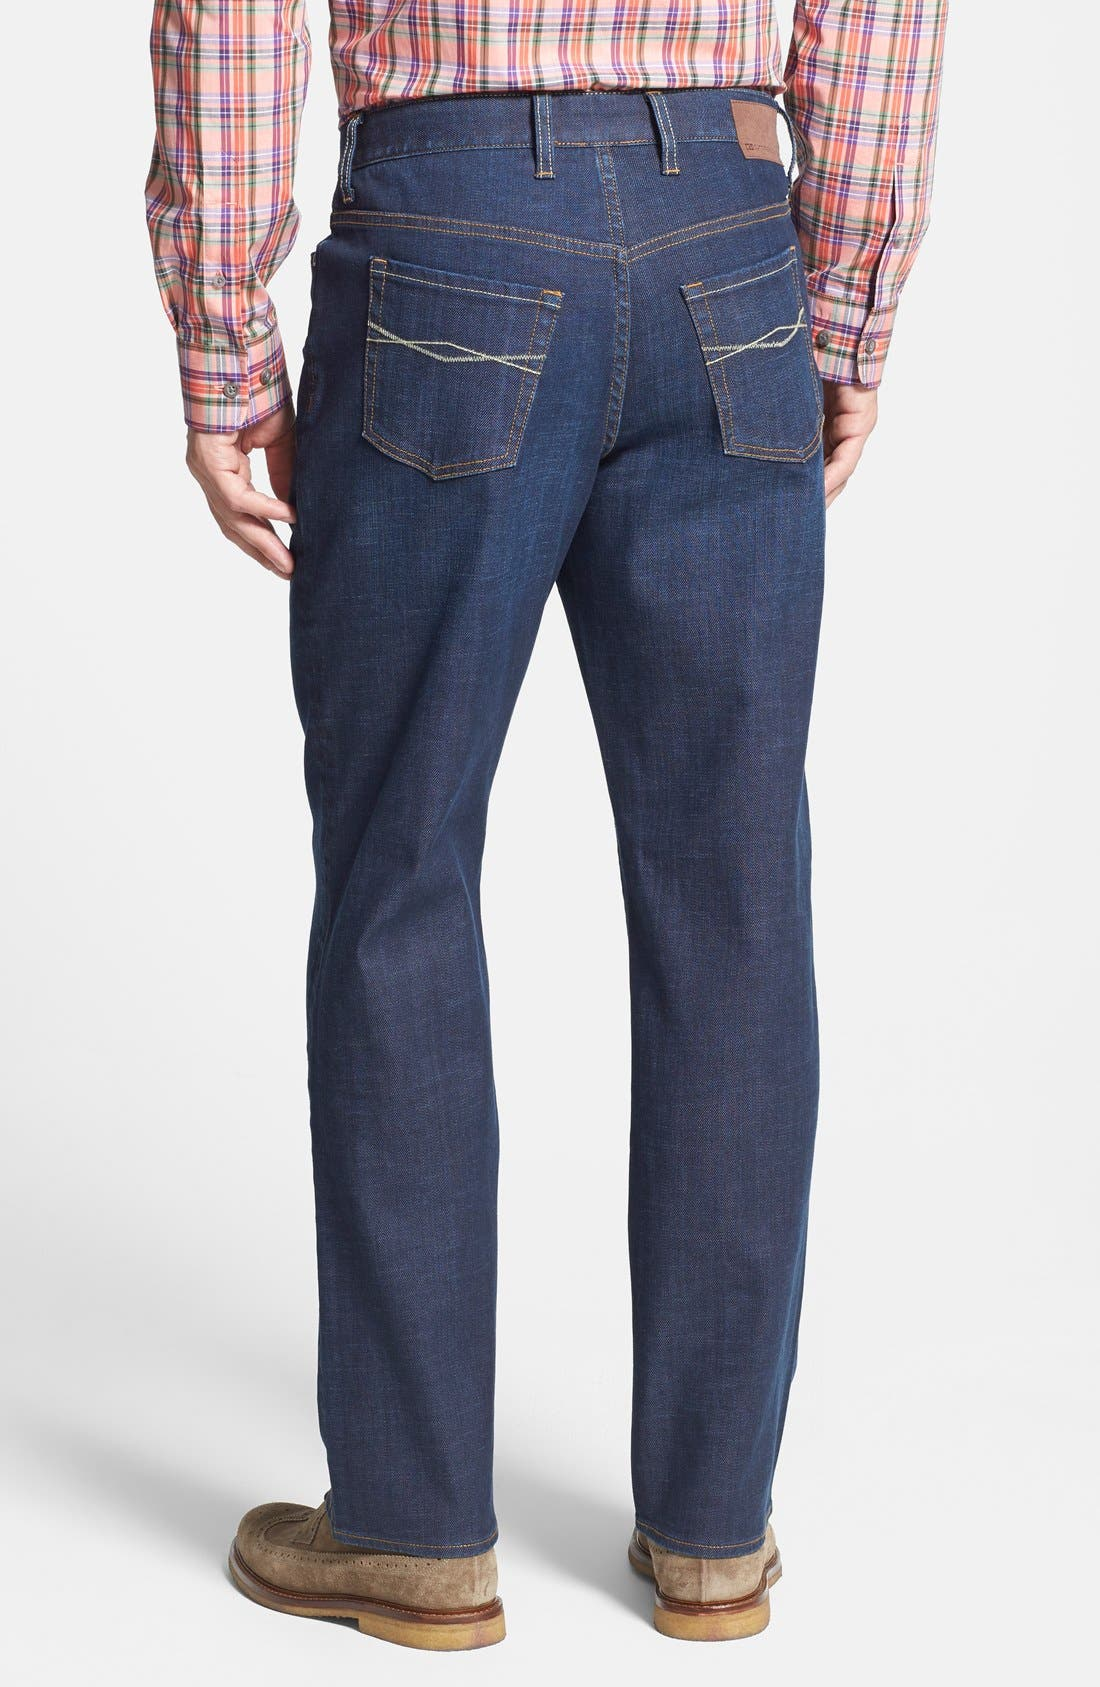 Greenwood Relaxed Fit Jeans,                             Alternate thumbnail 6, color,